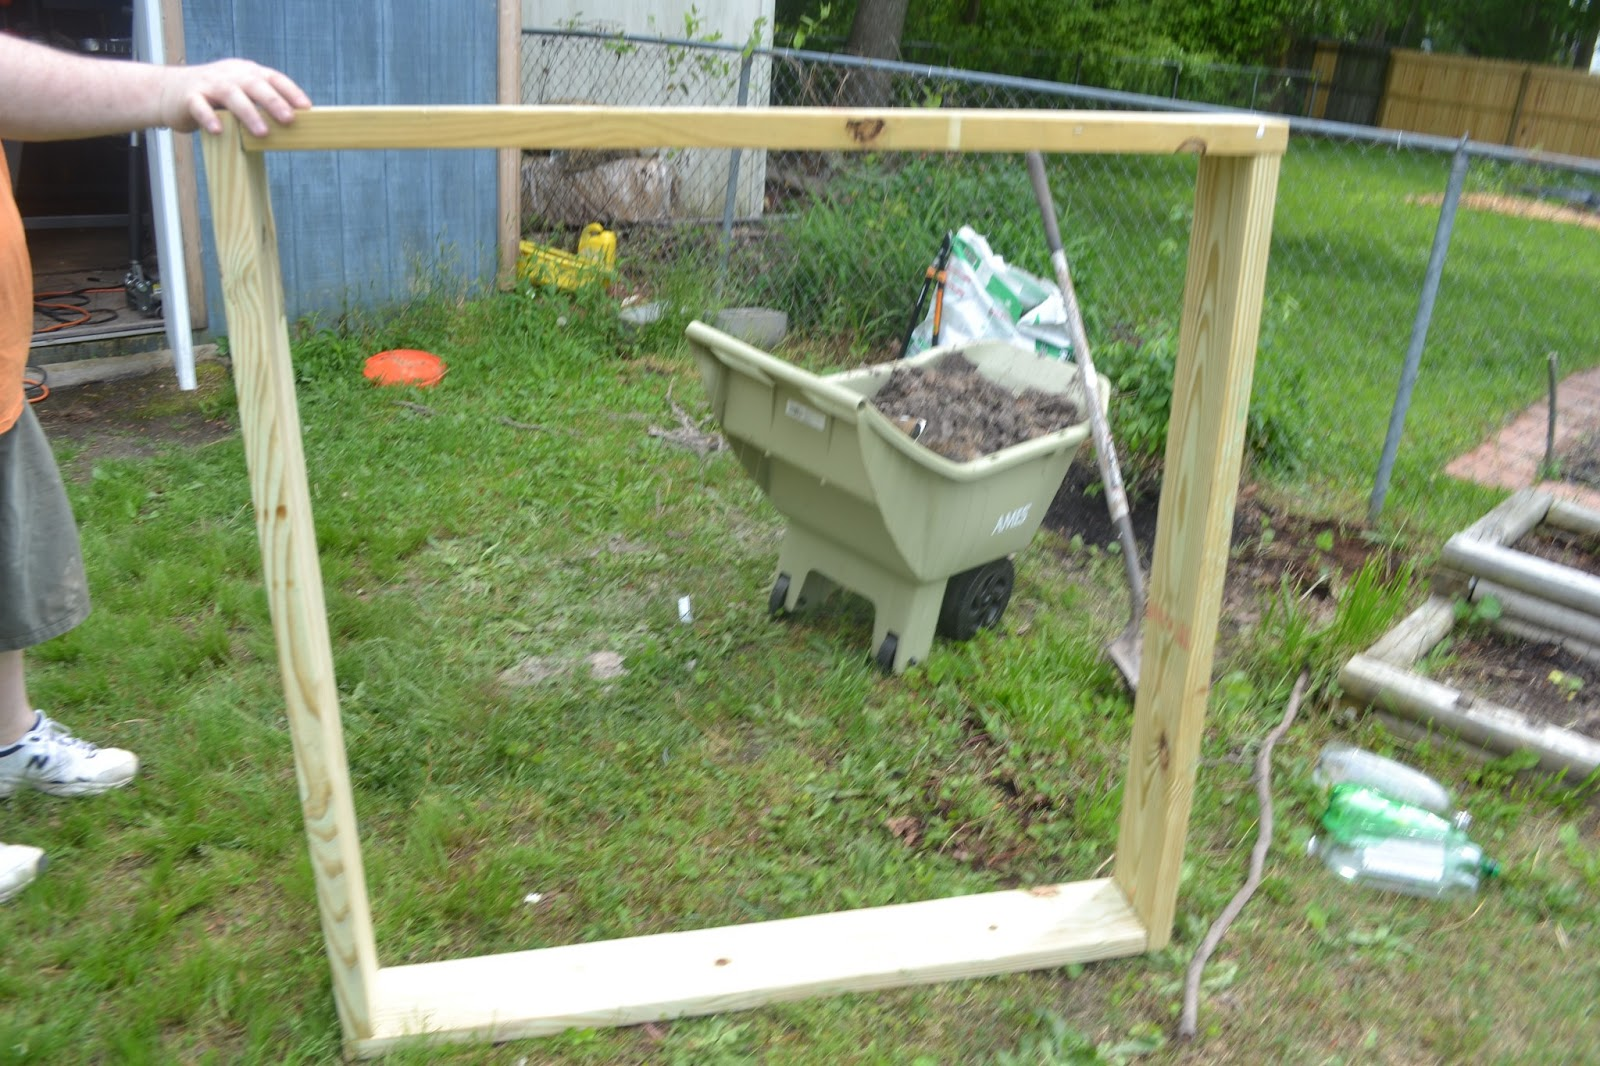 The frugal pantry 10 dollar square foot garden for Square feet ap style